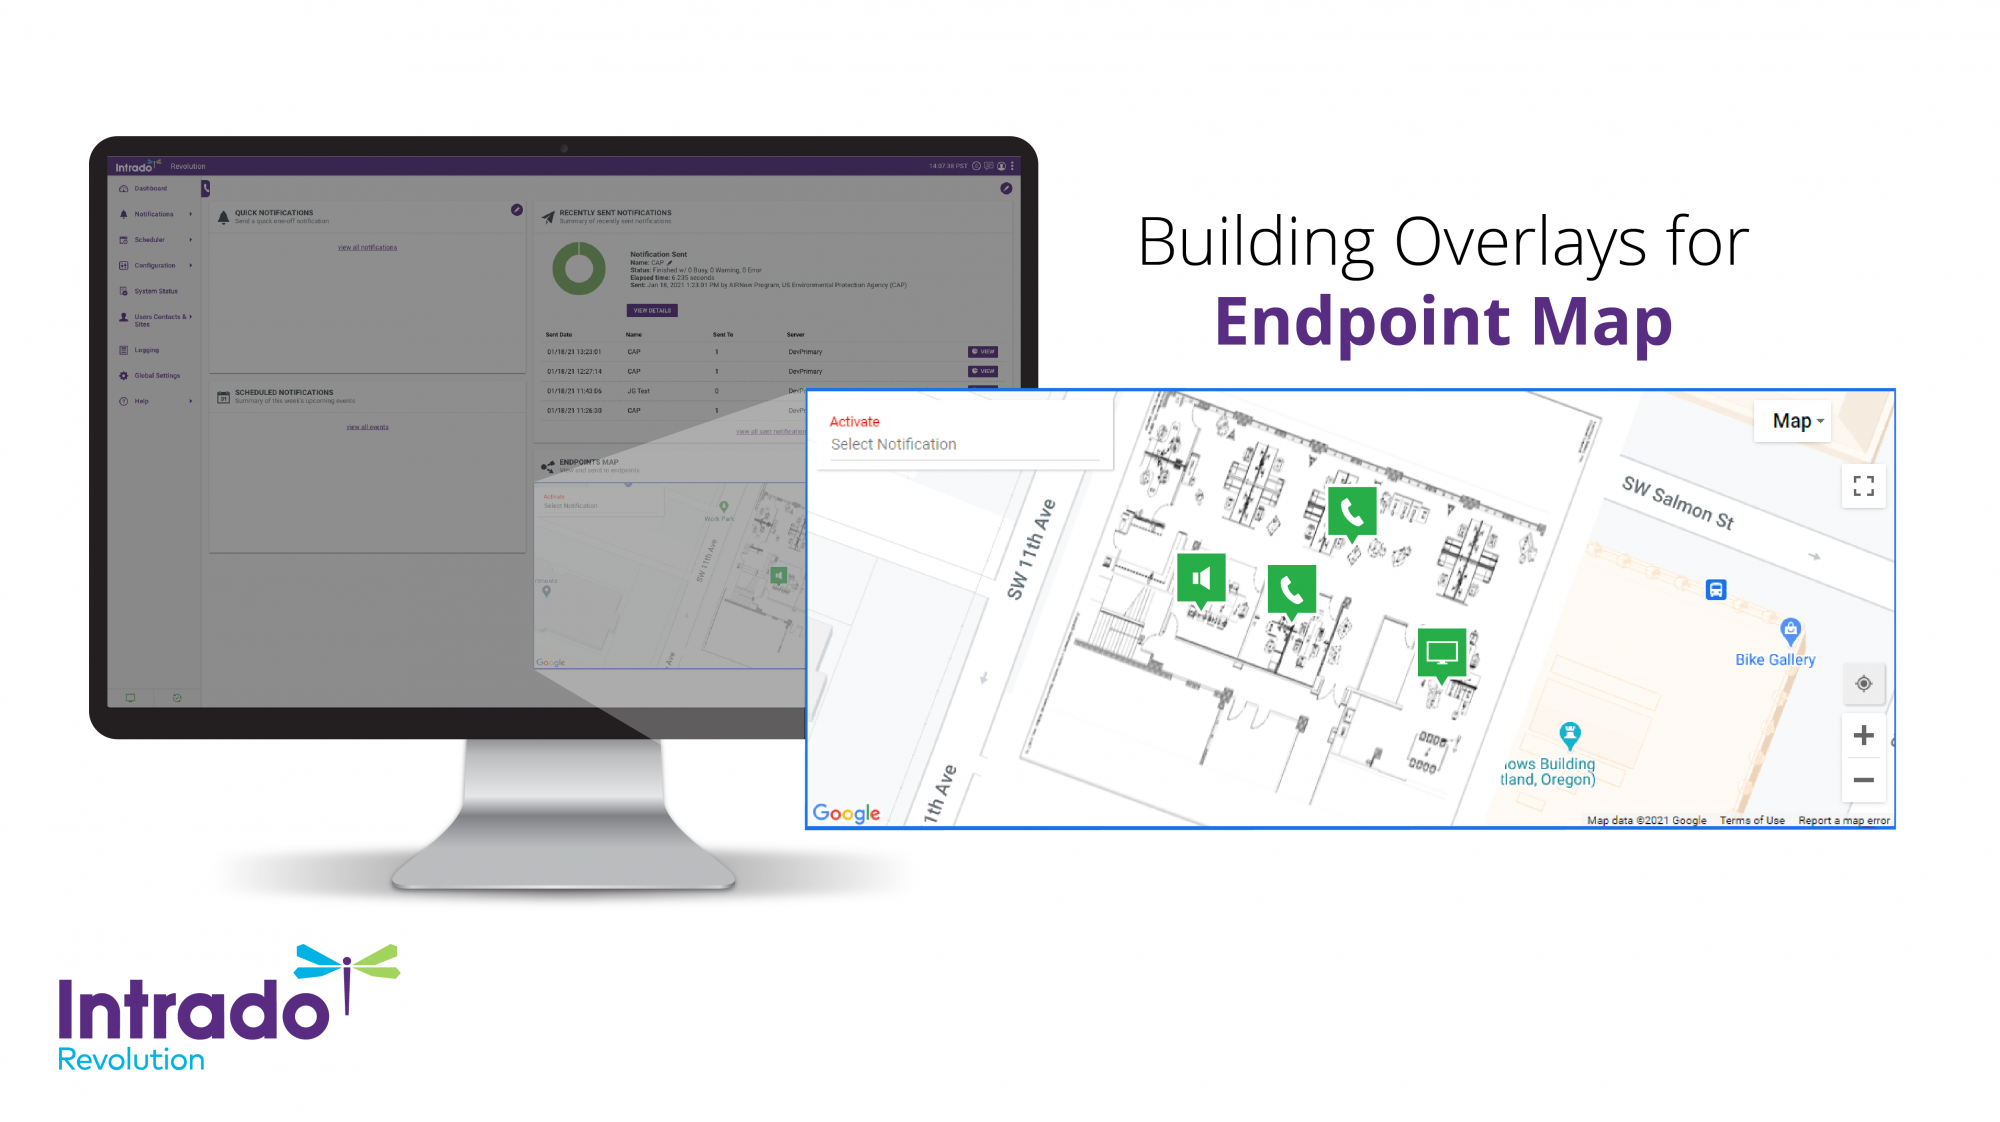 Building Overlays for Endpoint Map